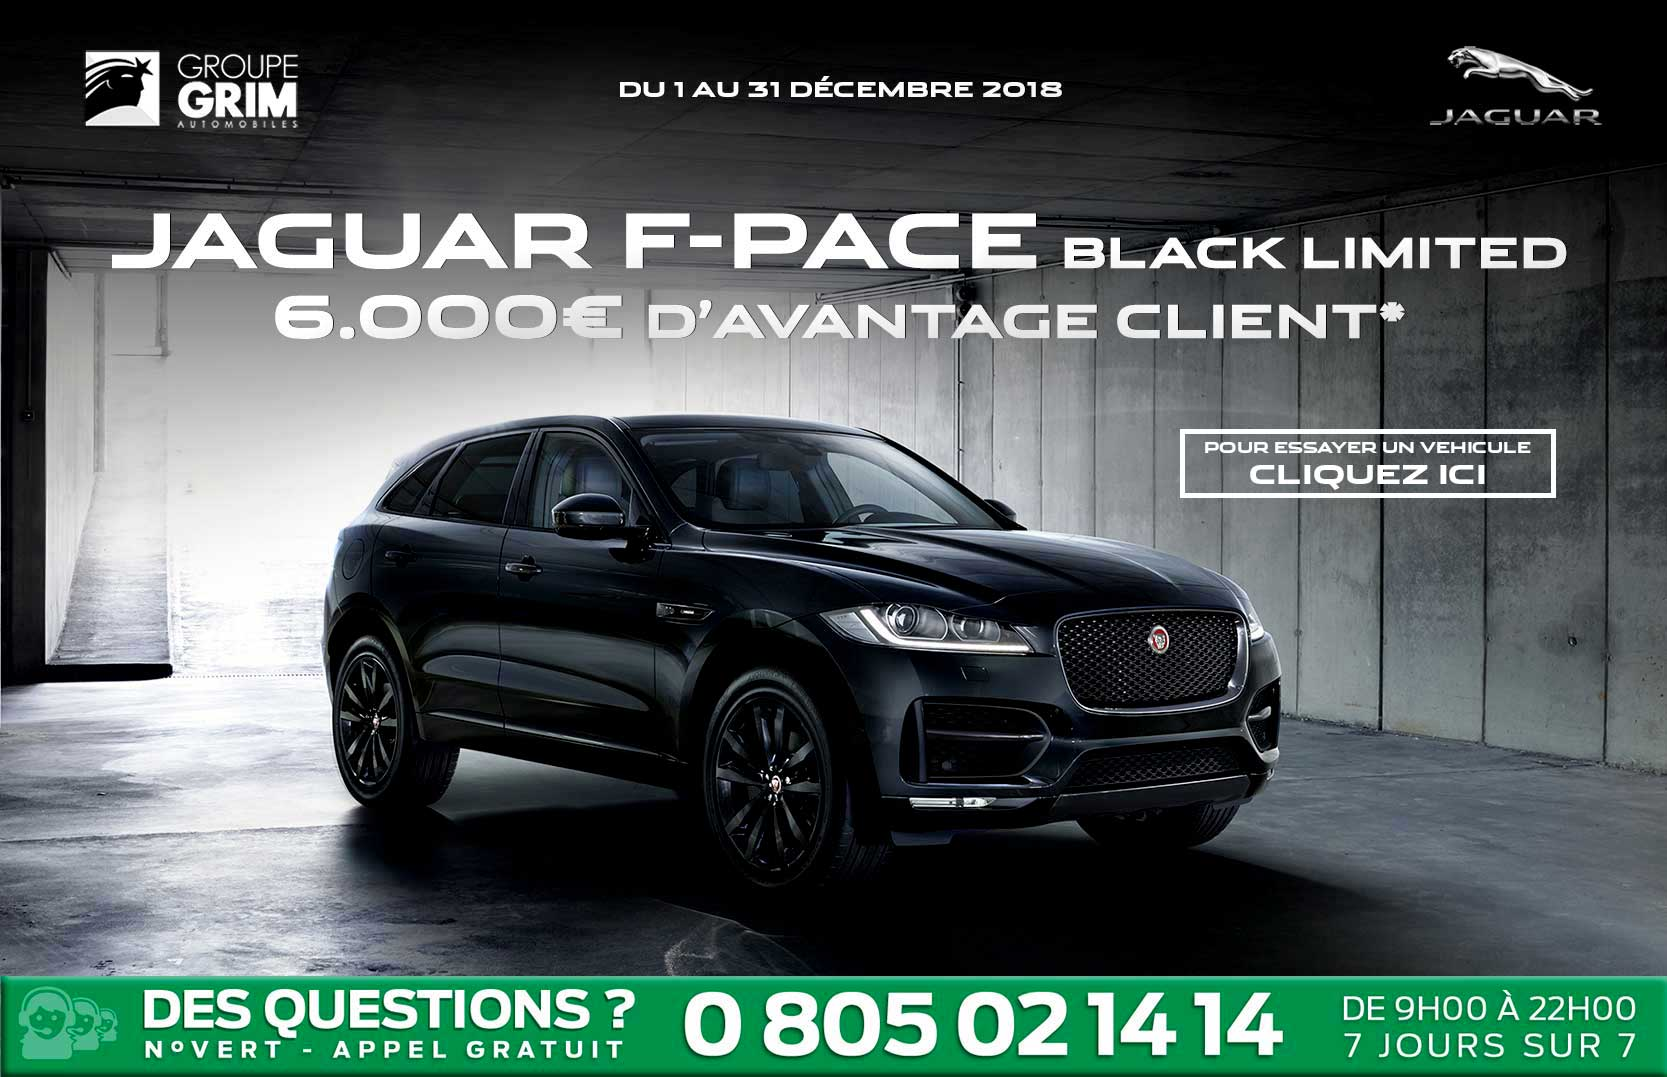 JAGUAR F-PACE BLACK LIMITED